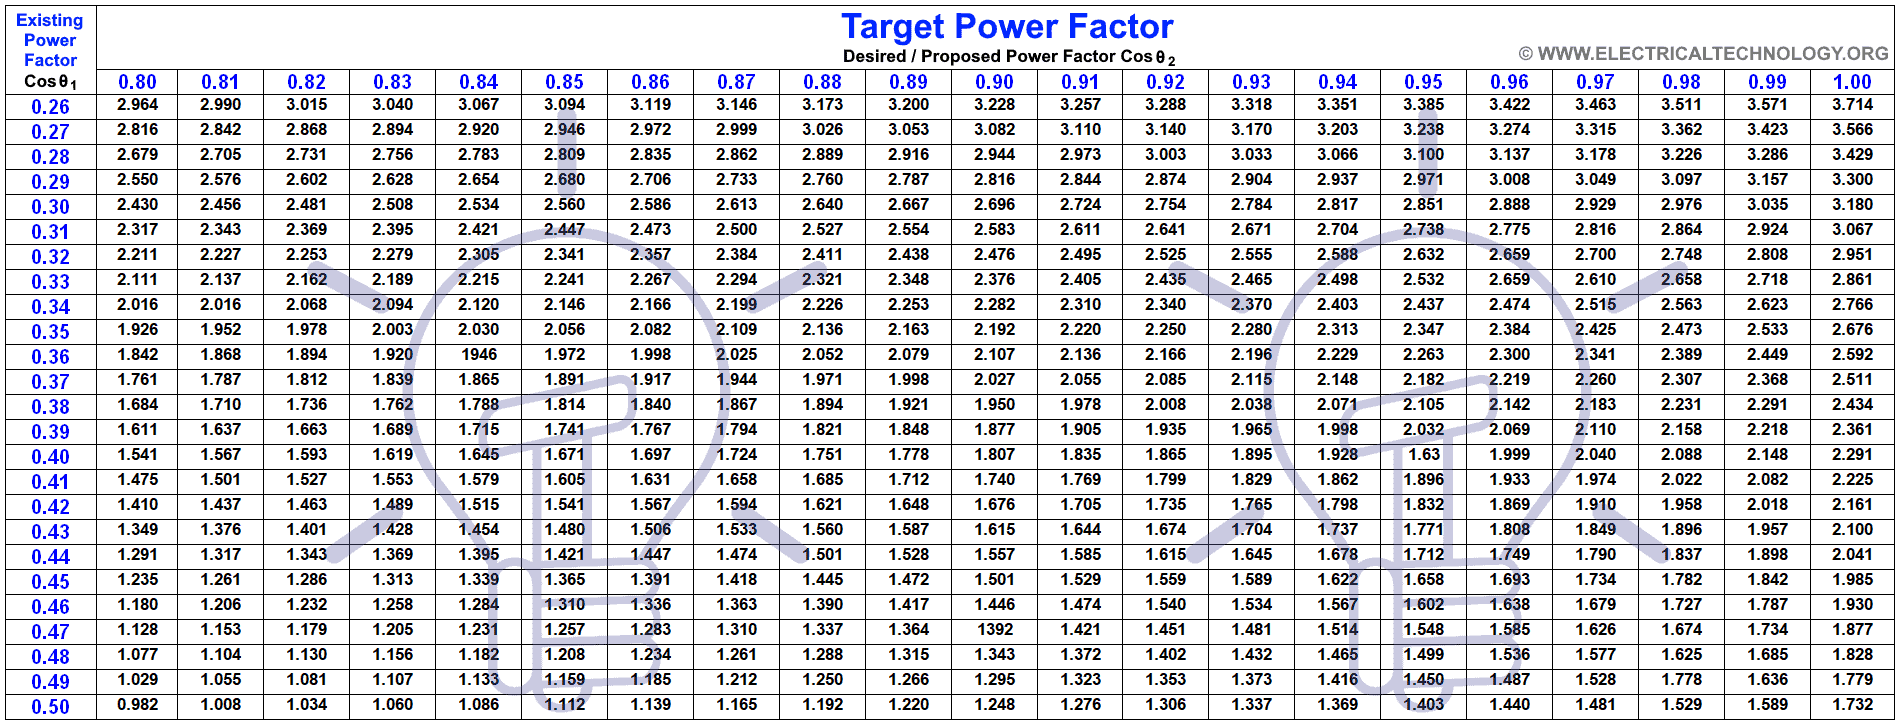 Capacitor Bank Sizing Chart and Table